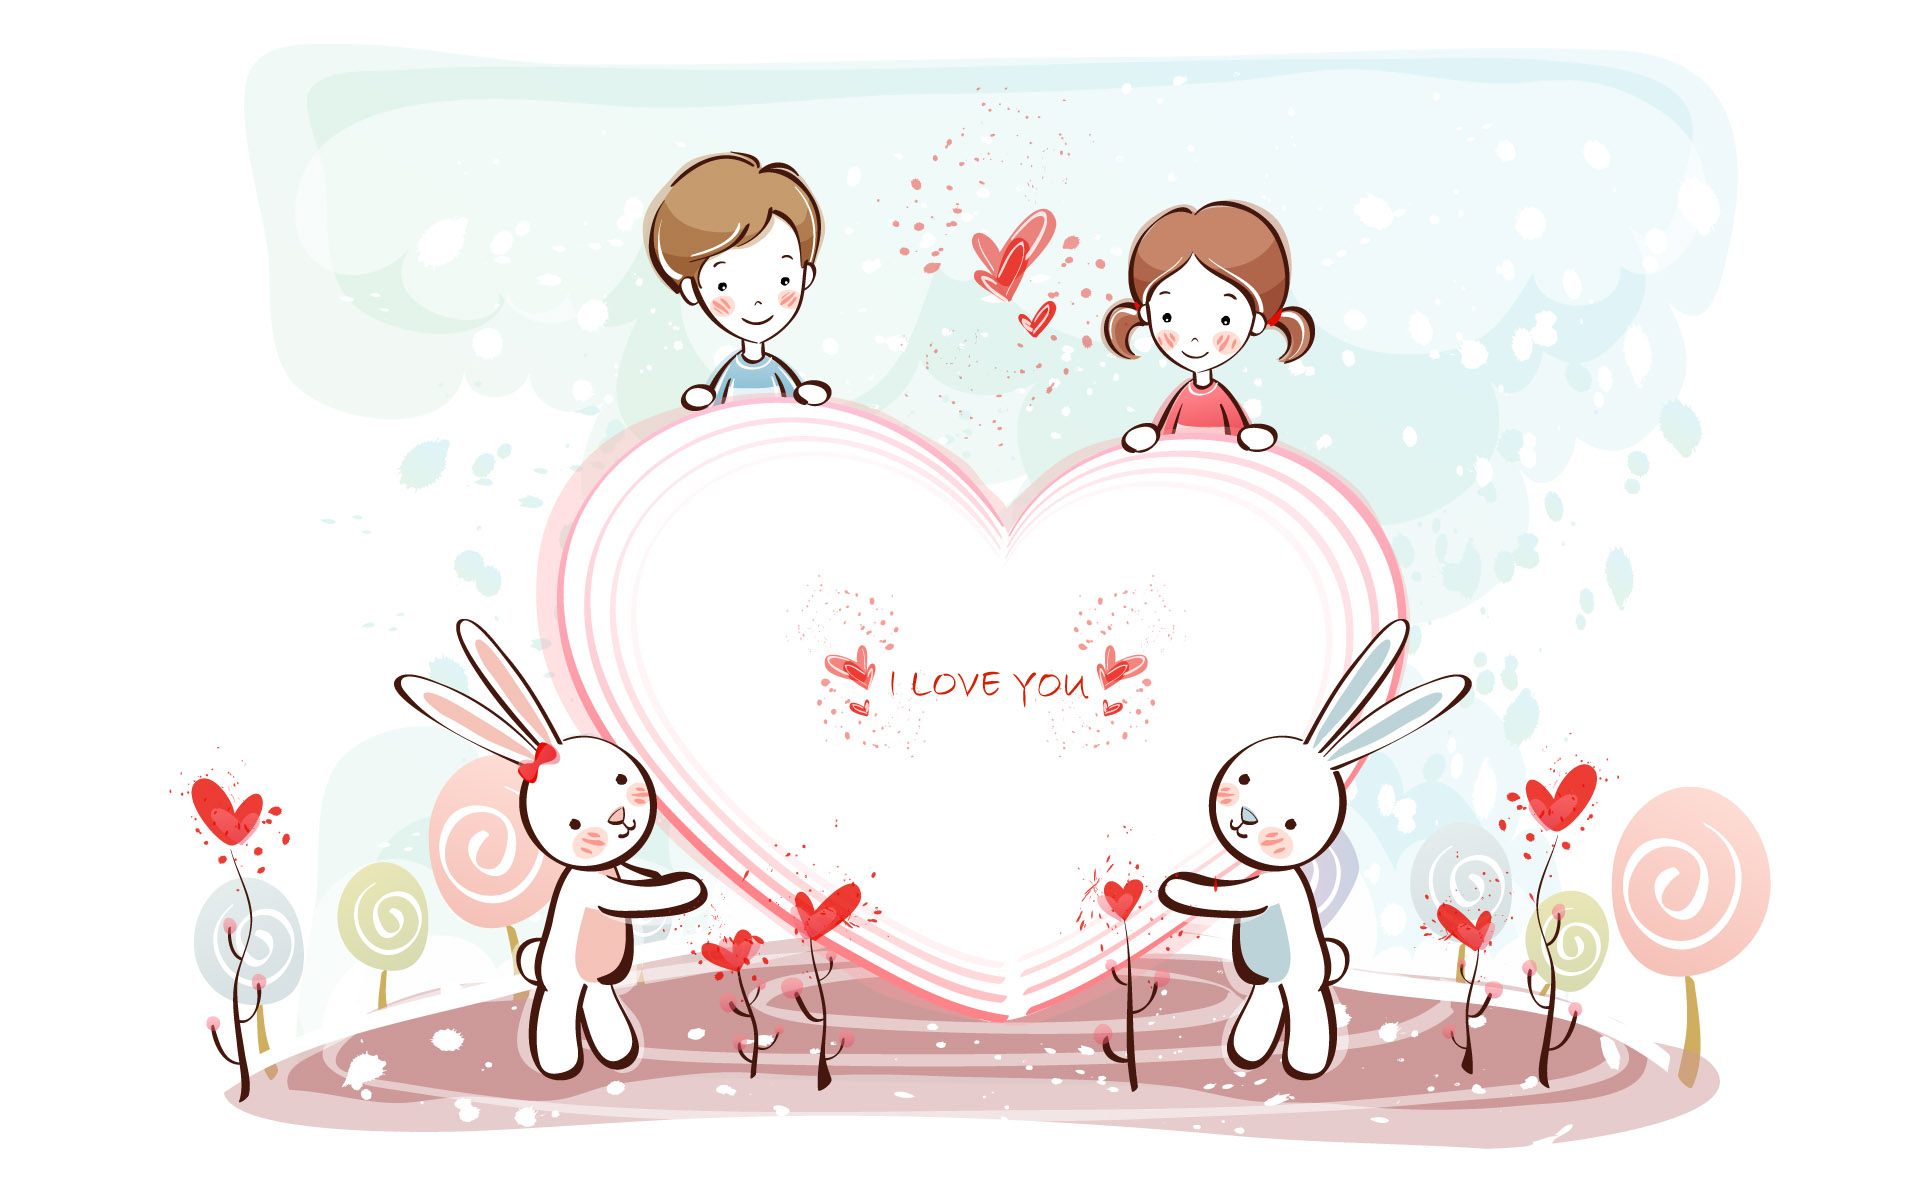 cute valentine wallpaper Gallery 76 images 1920x1200